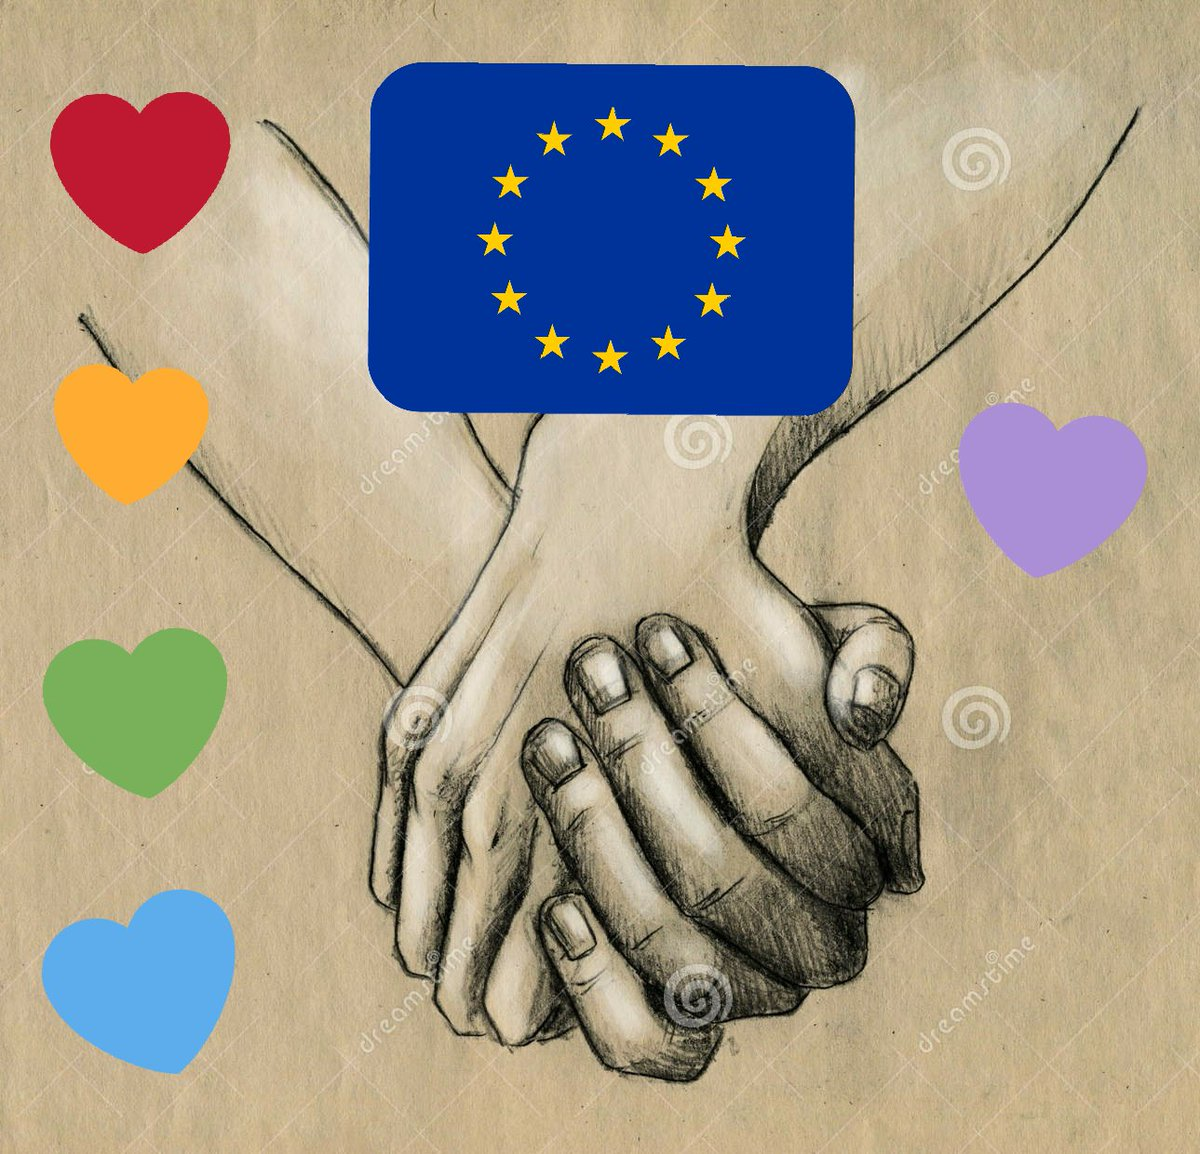 You, you may say I'm a dreamer But I'm not the only one  I hope someday you will join us and the world will be as one   #HandInHand4EU  #Europawahl2019   #wirsindmehr <br>http://pic.twitter.com/1waQinAQEu